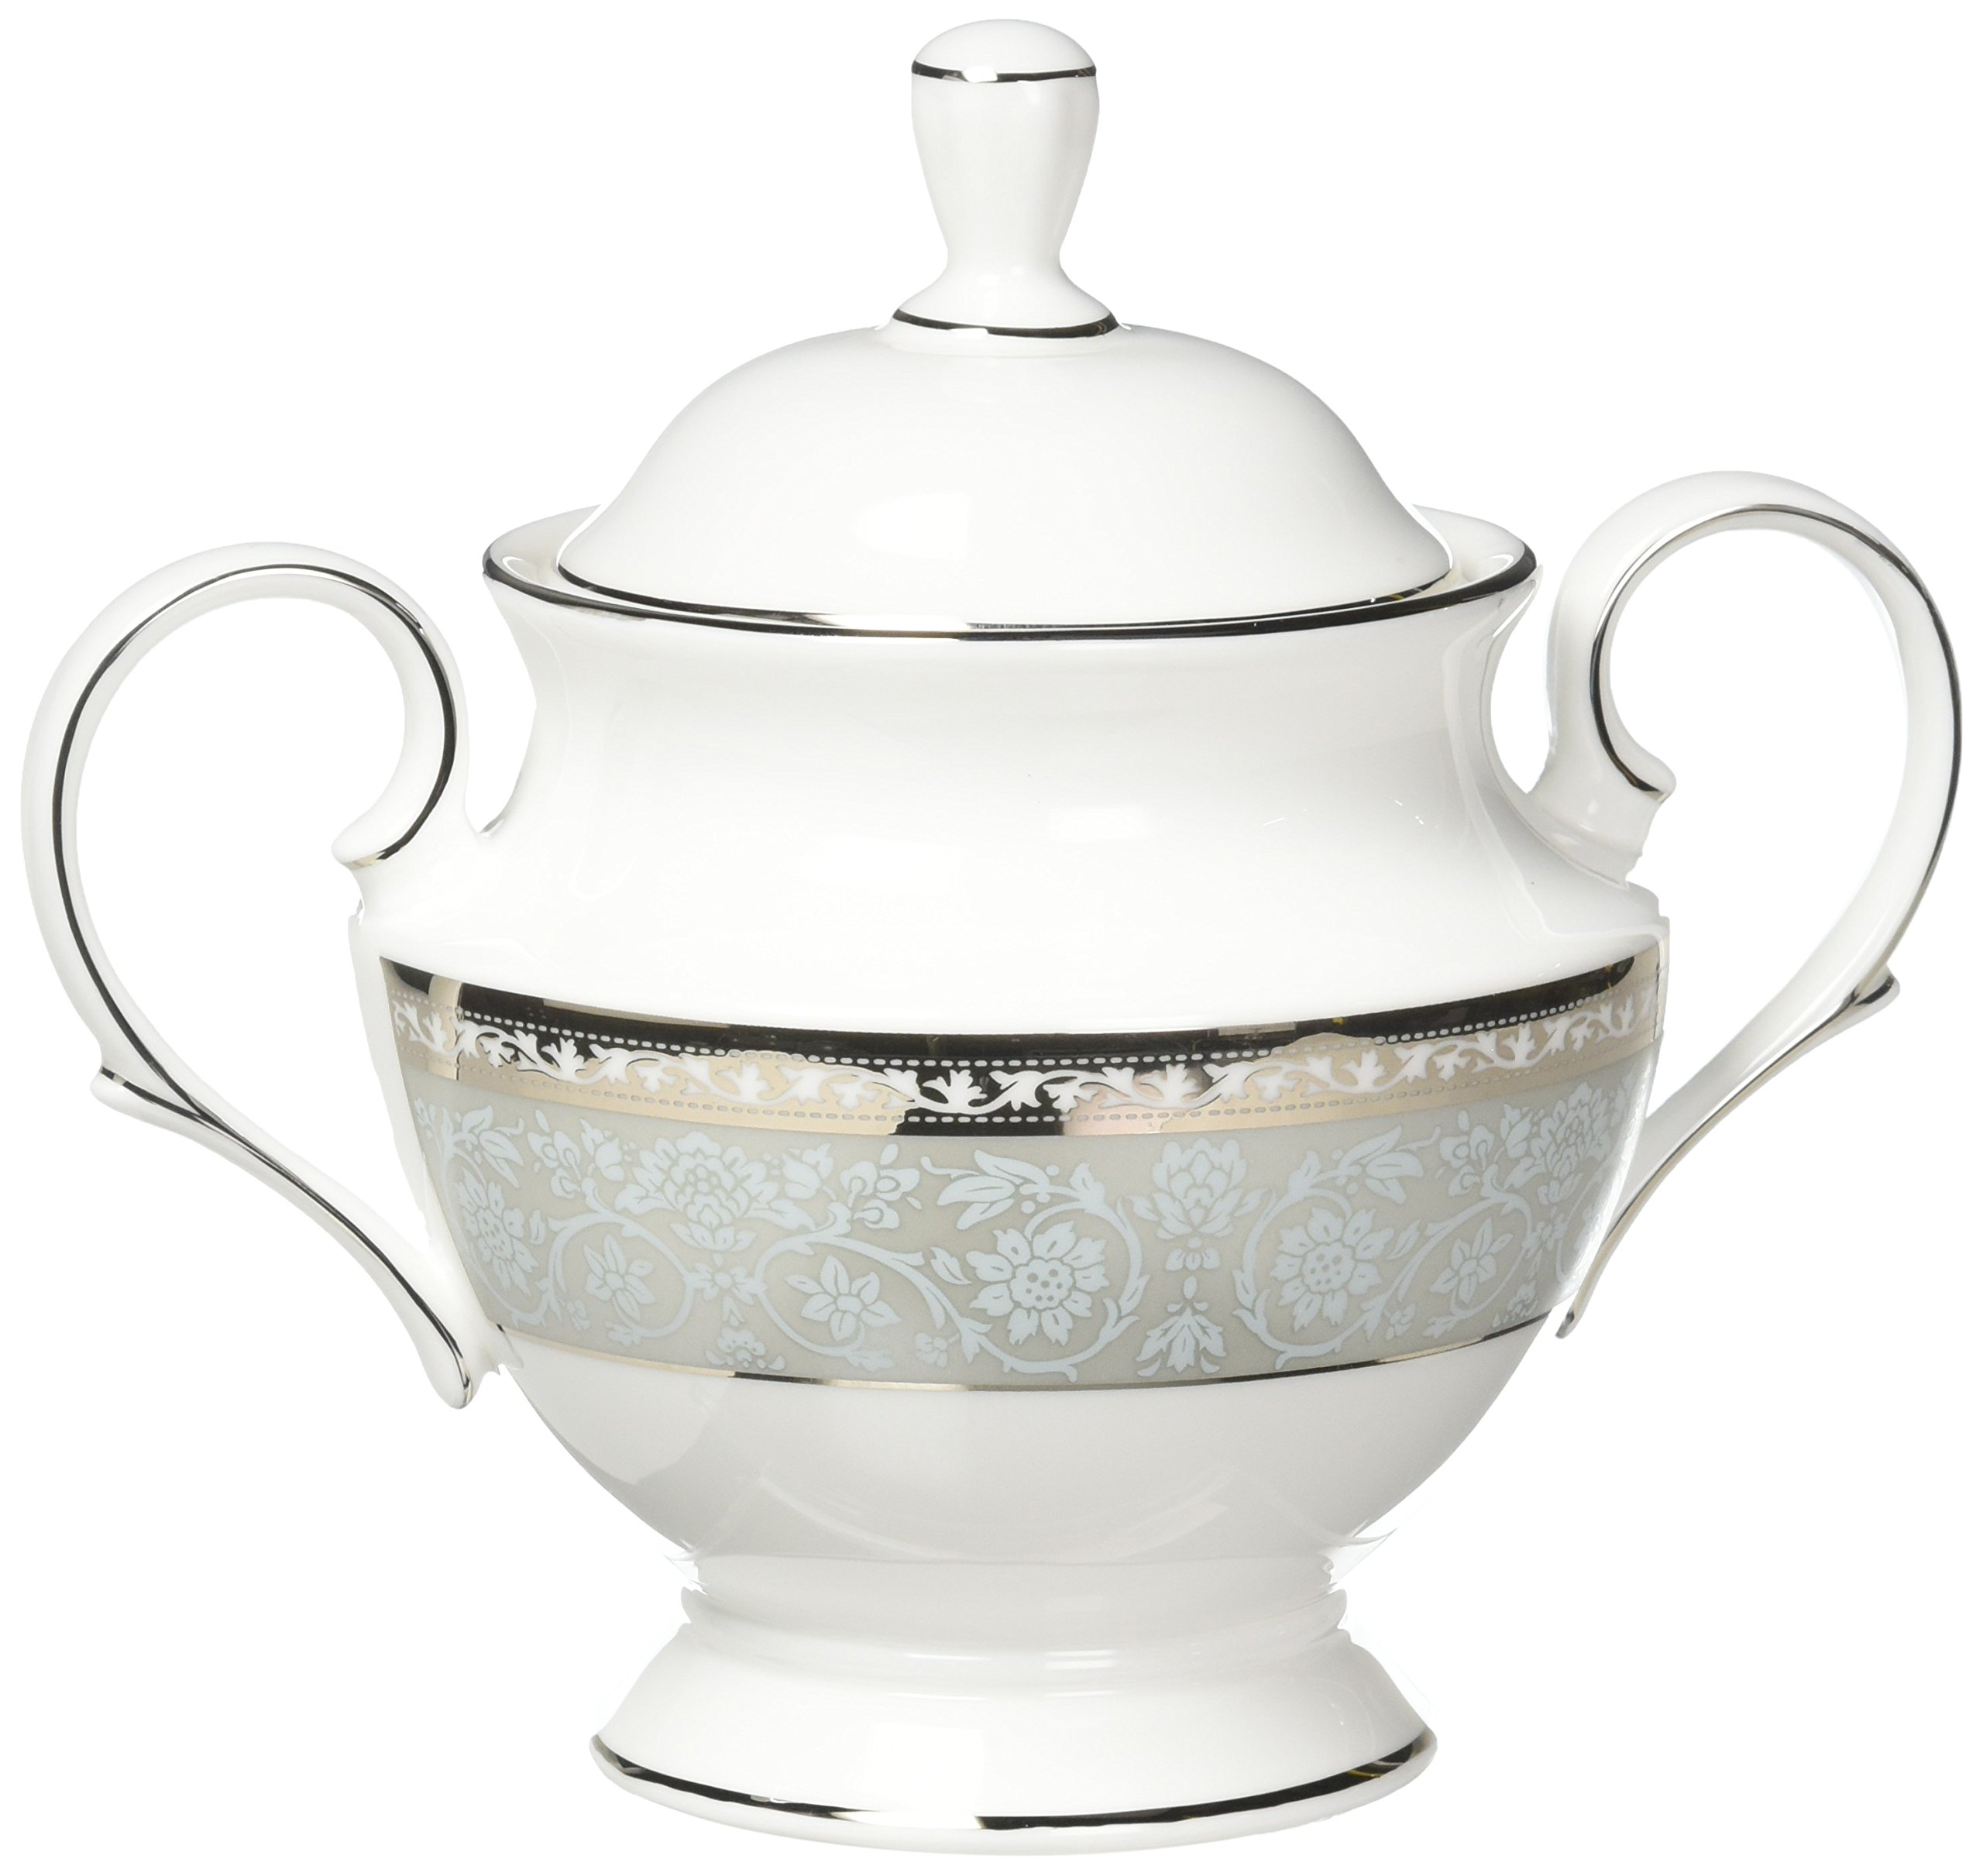 Lenox 858279 Westmore Sugar Bowl with Lid, White